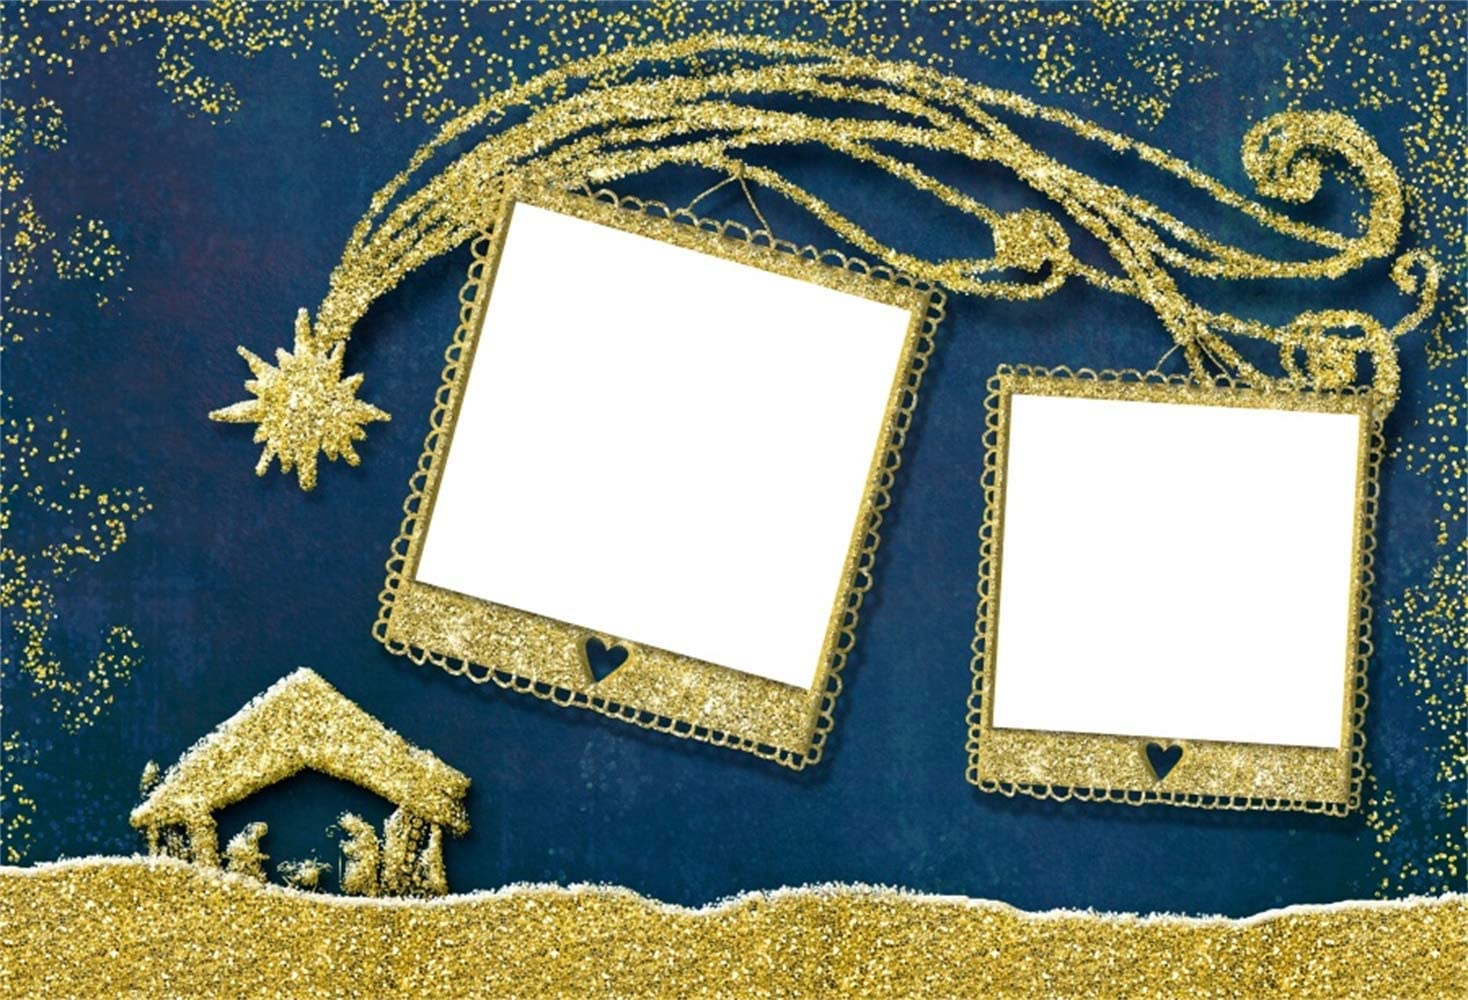 W x5ft H Polyester Children Christmas Photography Background 7ft Golden Gliter Photoframes Meteor Slipping to The Small Barn Nativity Scene Xmas Party Banner Child Baby Shoot Bible Story